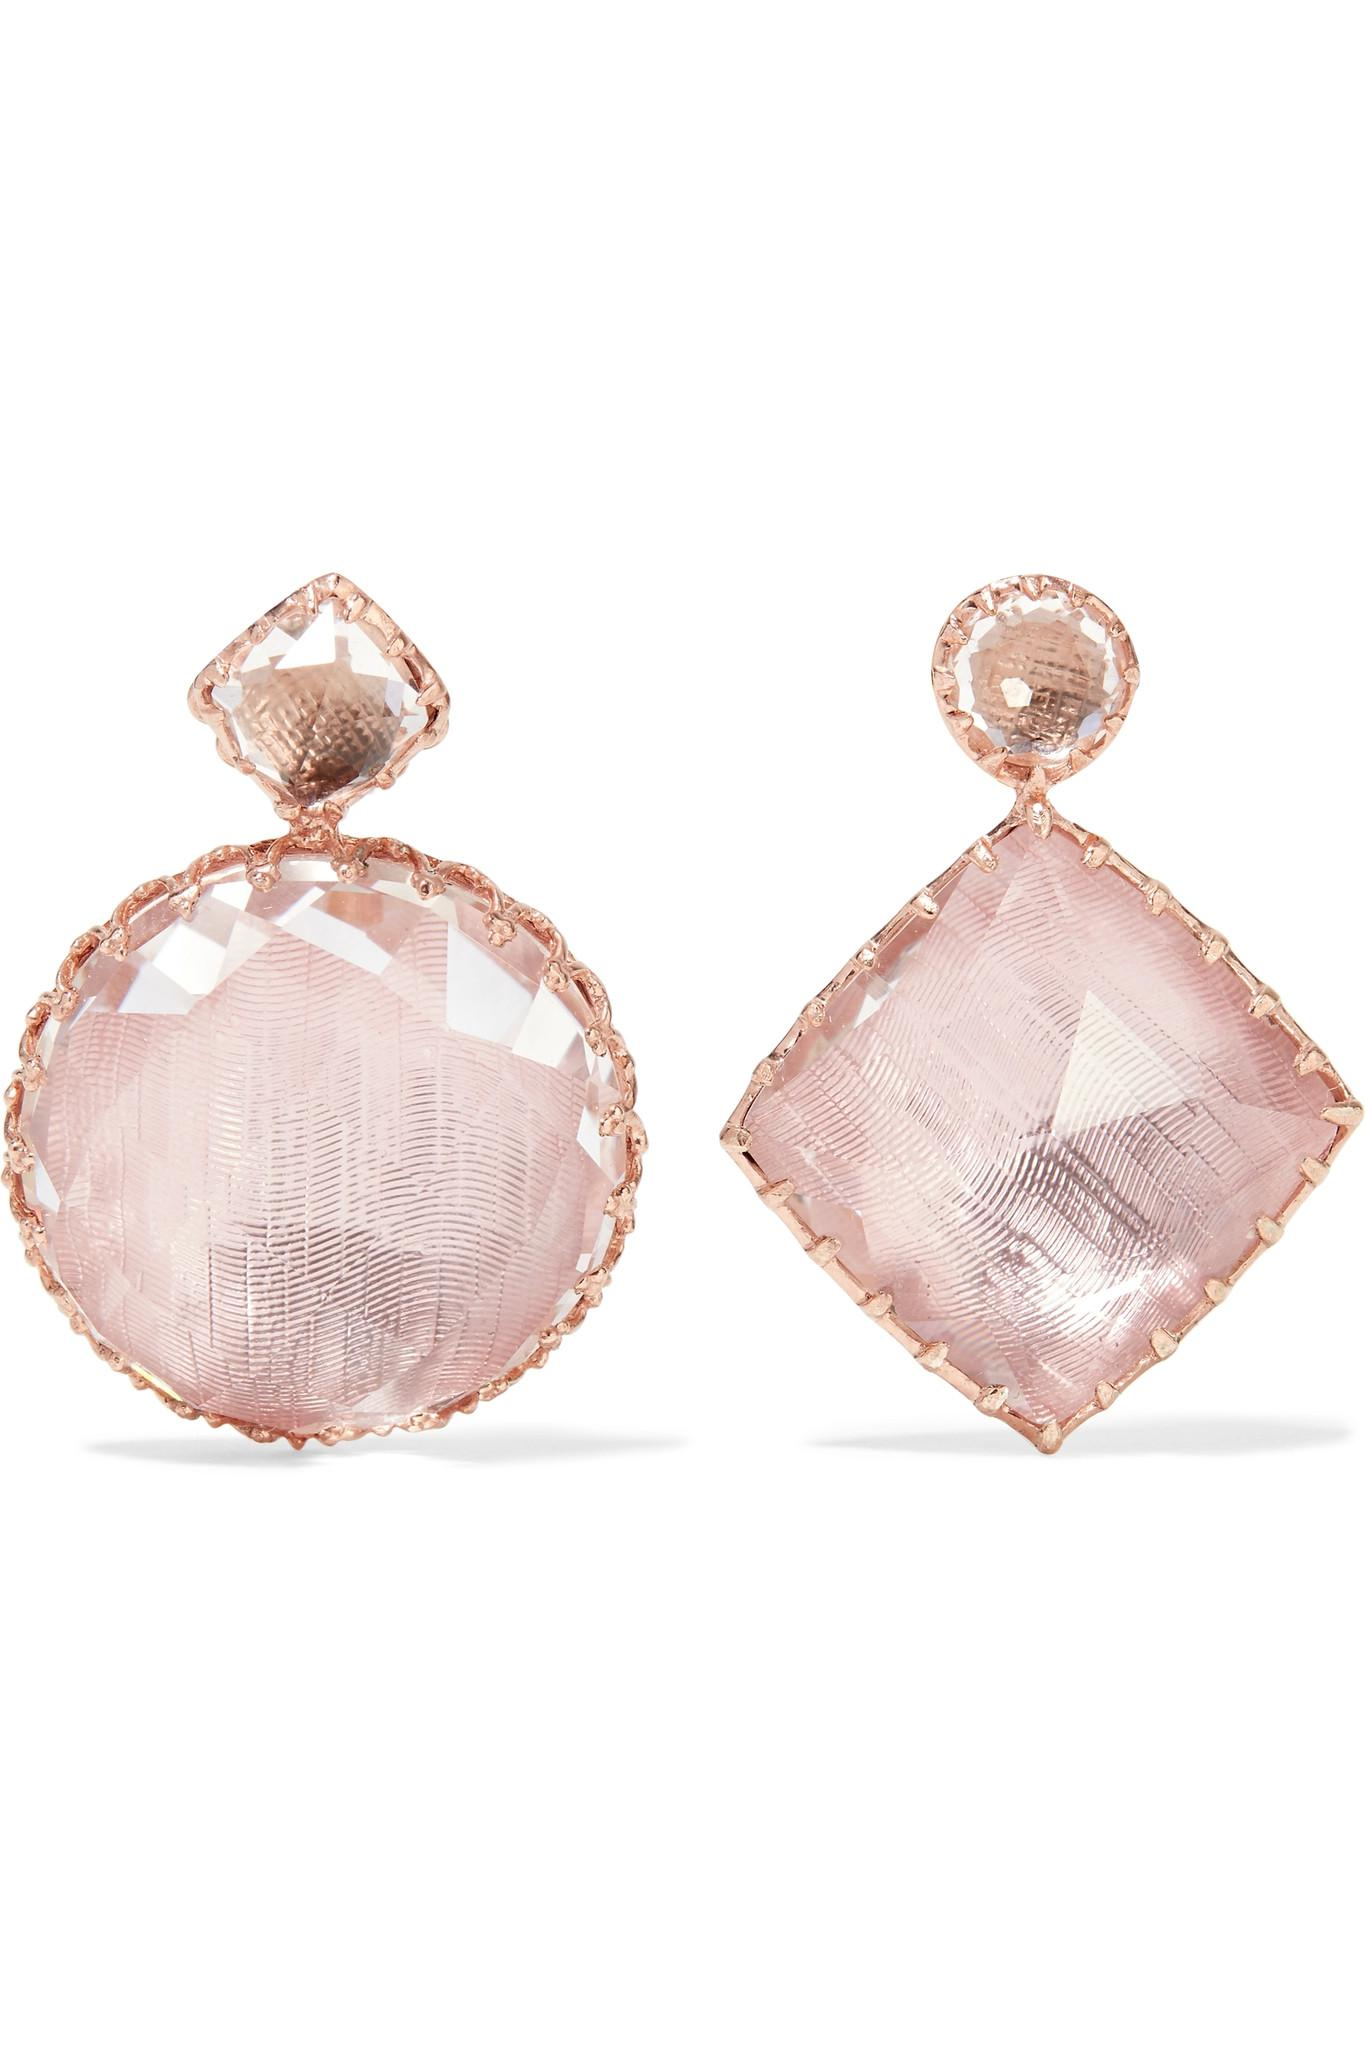 Larkspur & Hawk Jane Rose Gold-dipped Quartz Earrings EIYlTmo